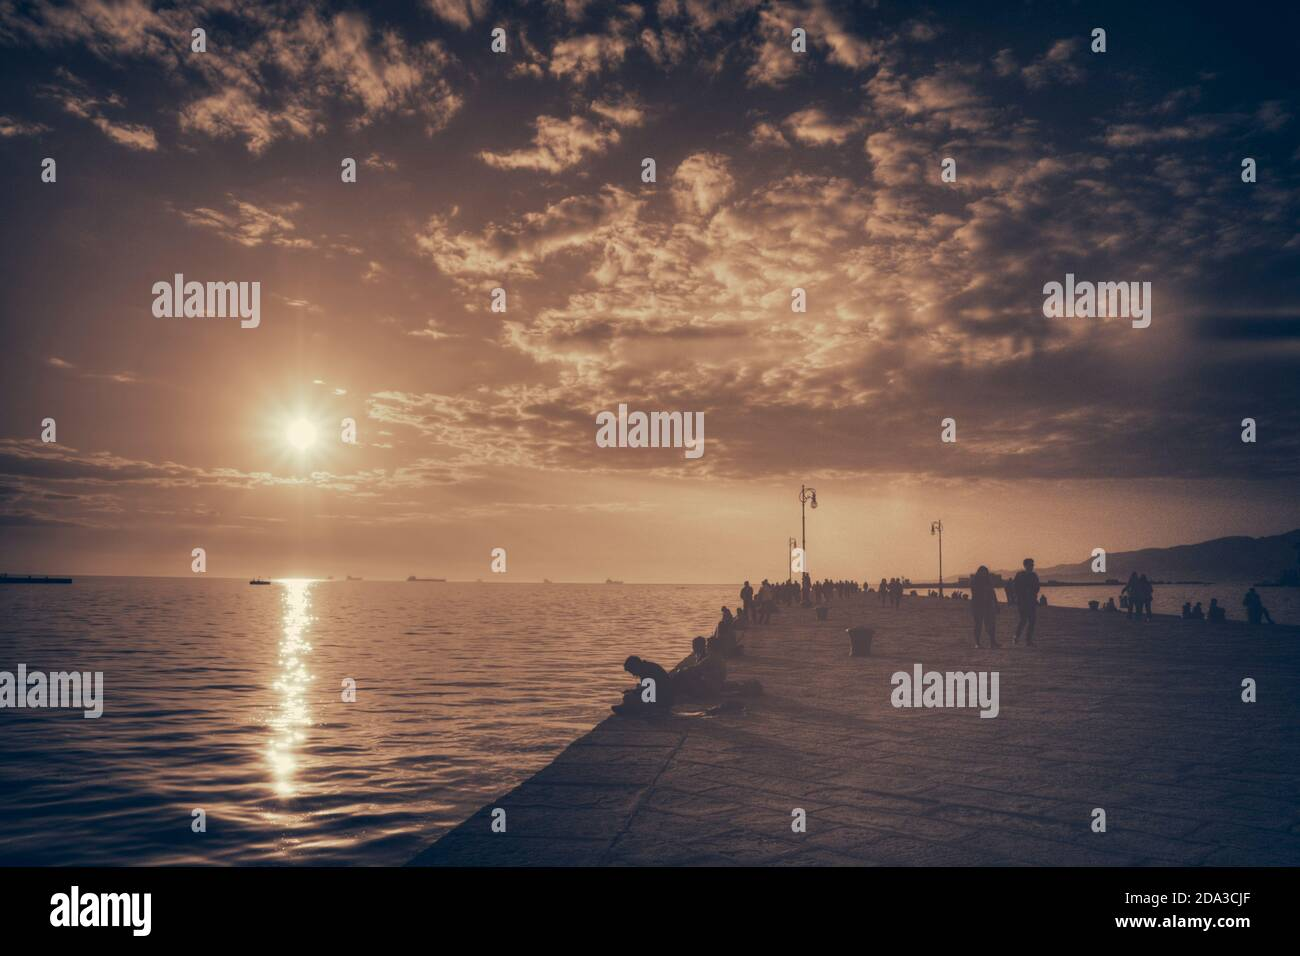 Trieste, Italy. Molo Audace. People relax in the warm light of a romantic sunset Stock Photo